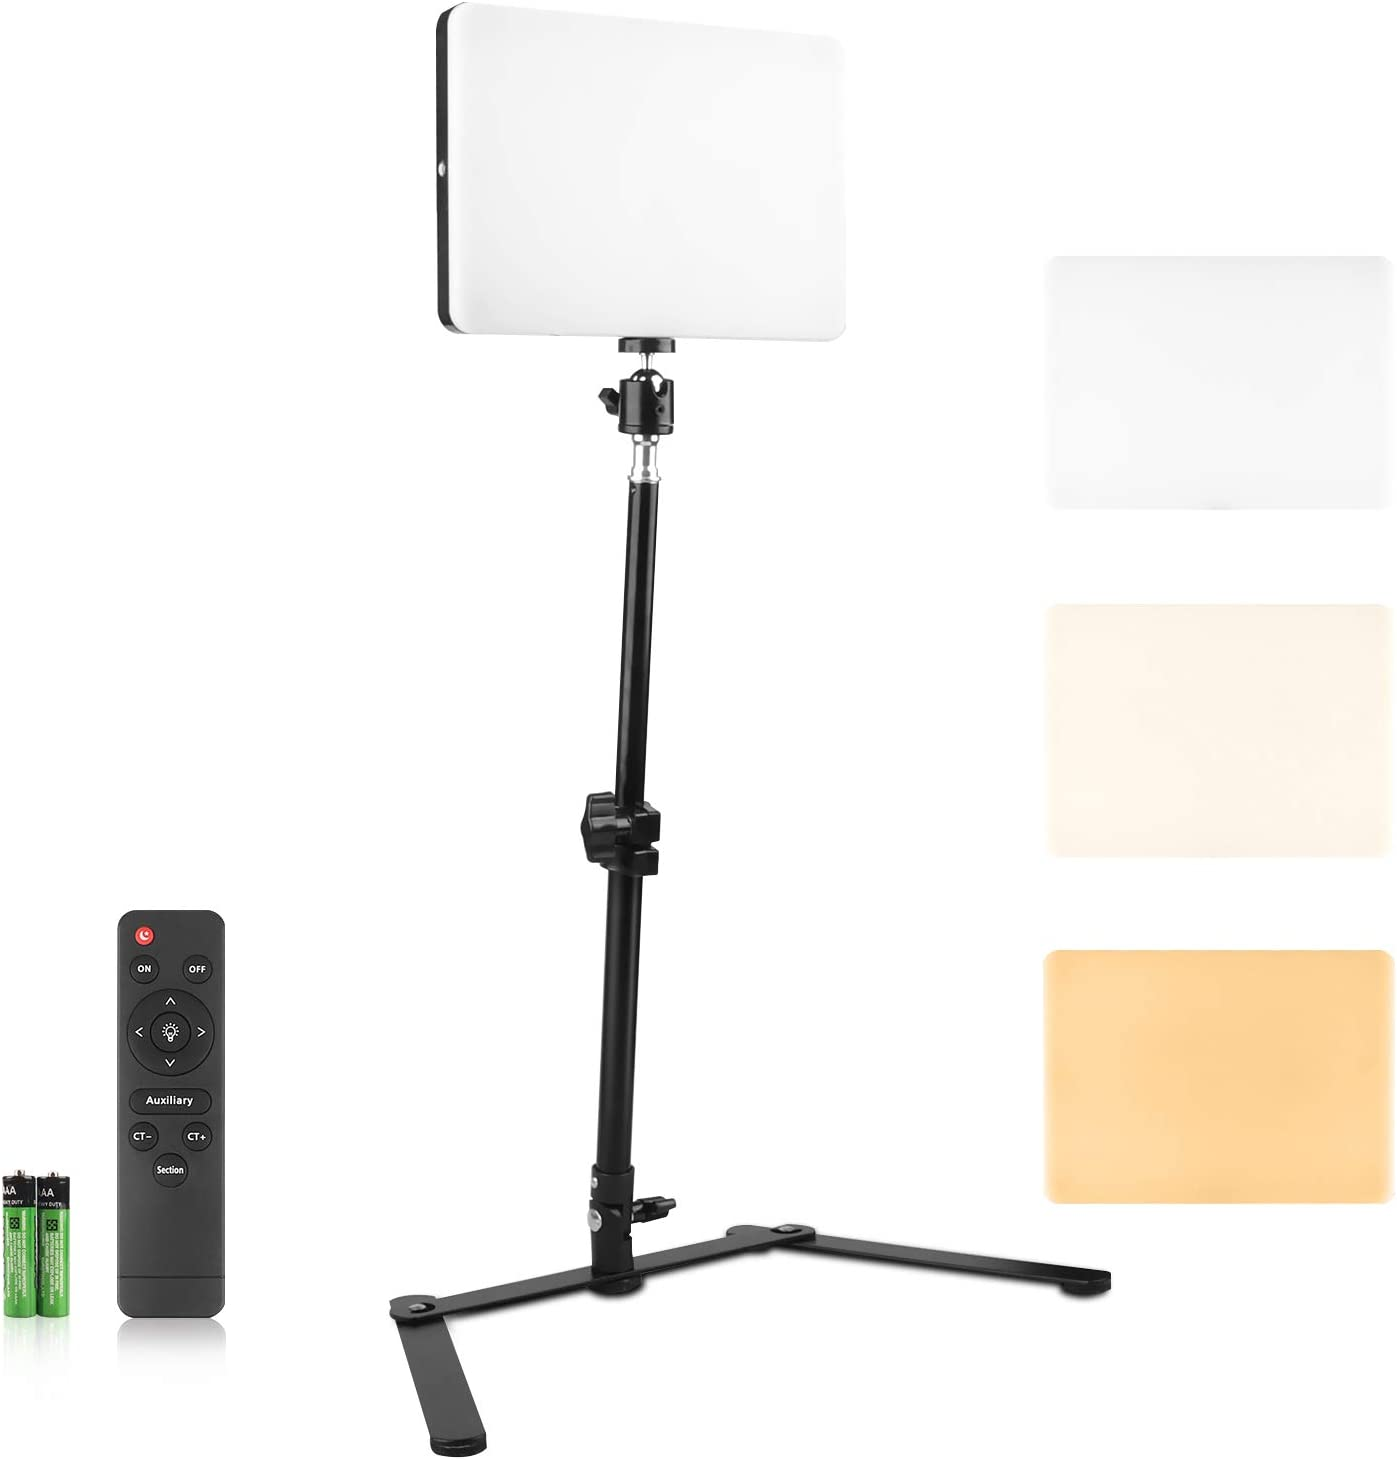 MOMIRA LED Camera Video Light with Overhead Trapezoidal Mount Remote Portable Photography Lighting Dimmable Studio Photo Lights for Shooting Vlog Filming Online Video Food Recording(MM-240)